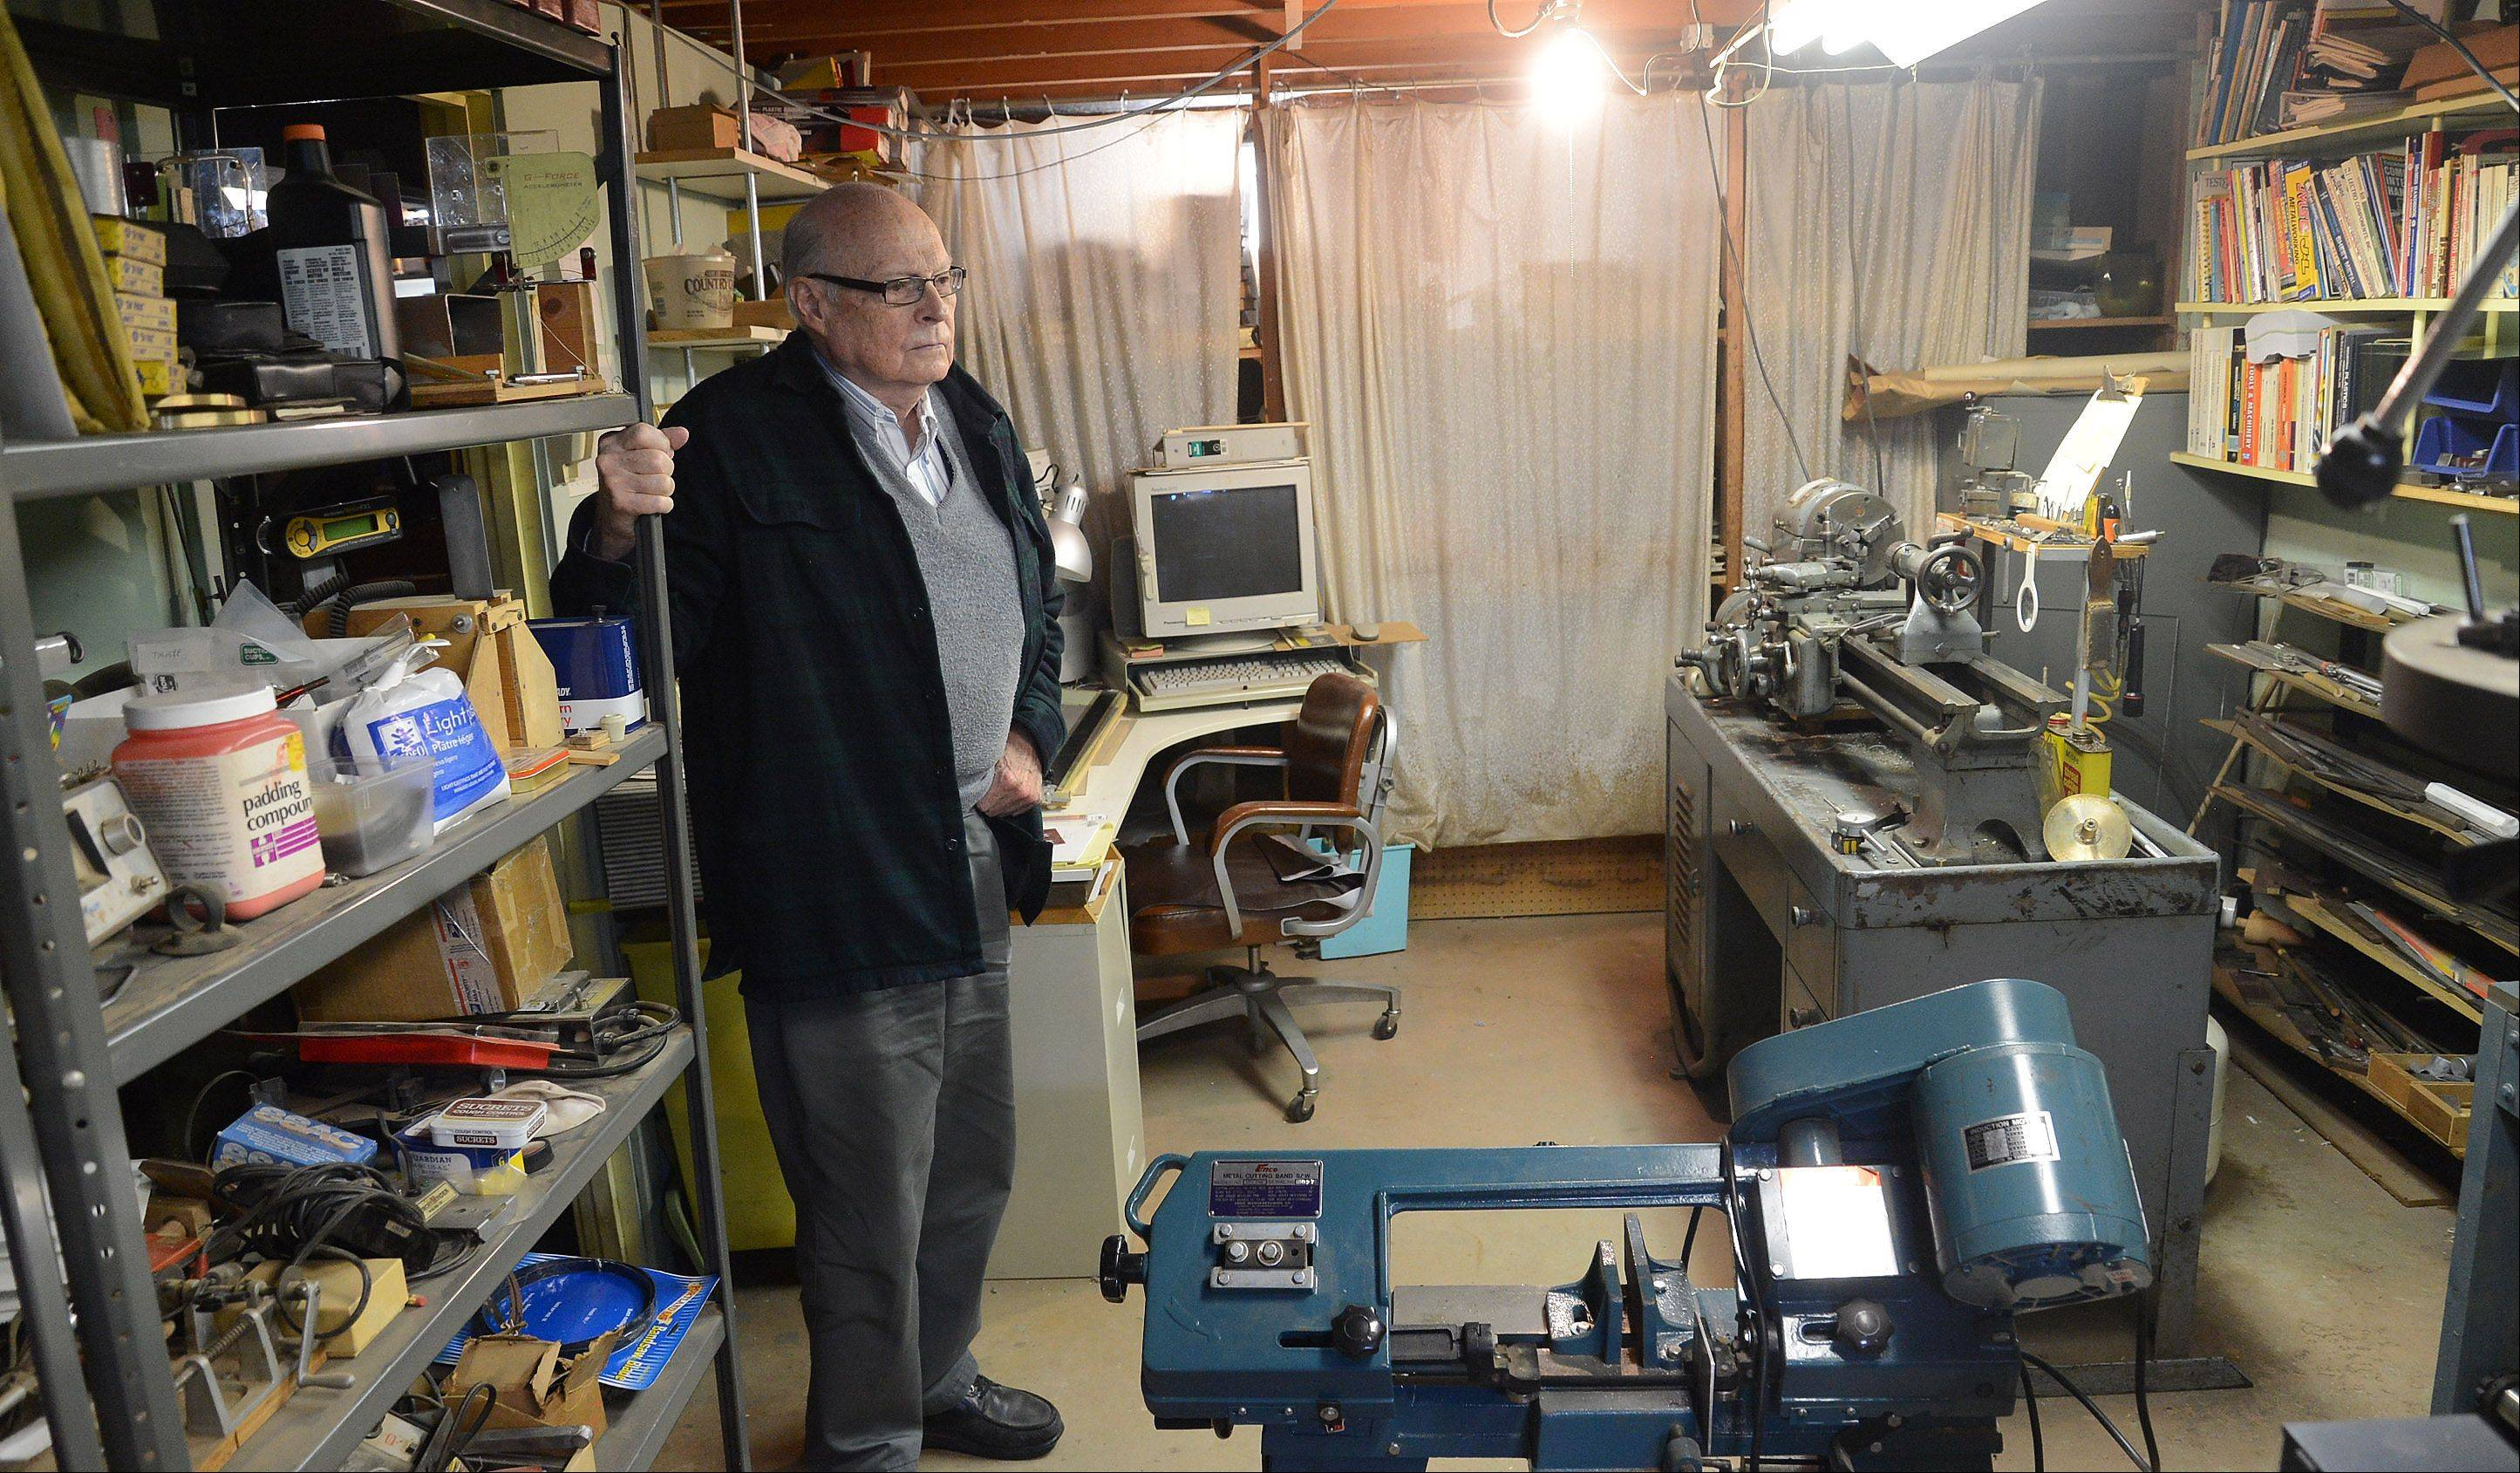 Buying the first Rolling Meadows house that offered a basement, 85-year-old retired engineer Ed Evenson has used his workshop to make everything from pocket sundials to educational children's toys.